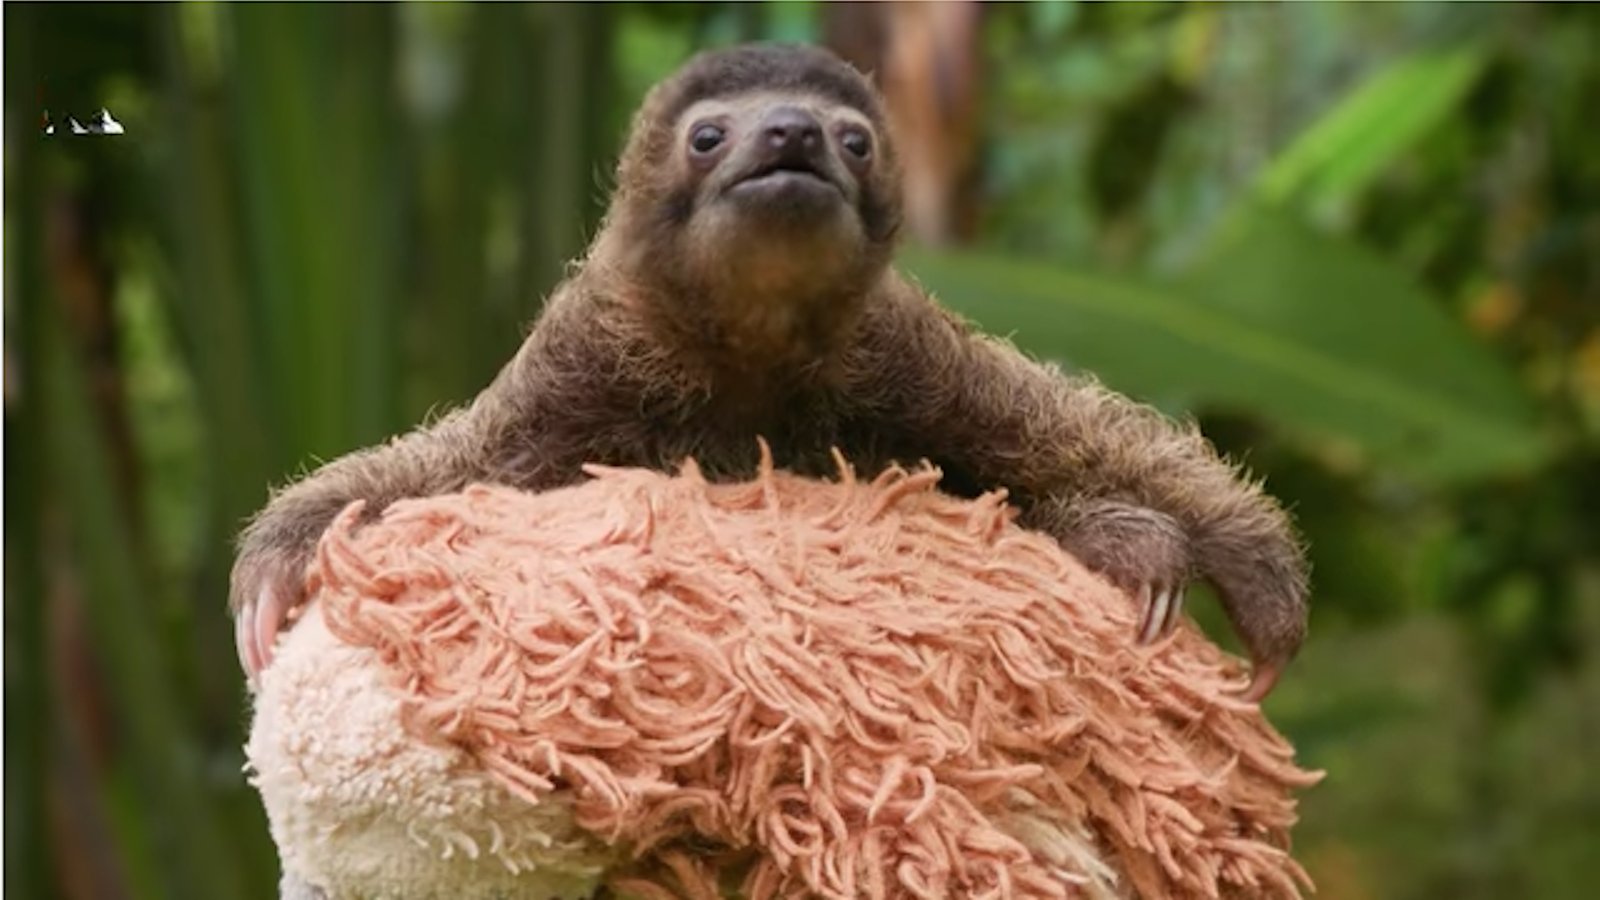 B-rad, the Baby Sloth, Does Not Know the World Is Burning